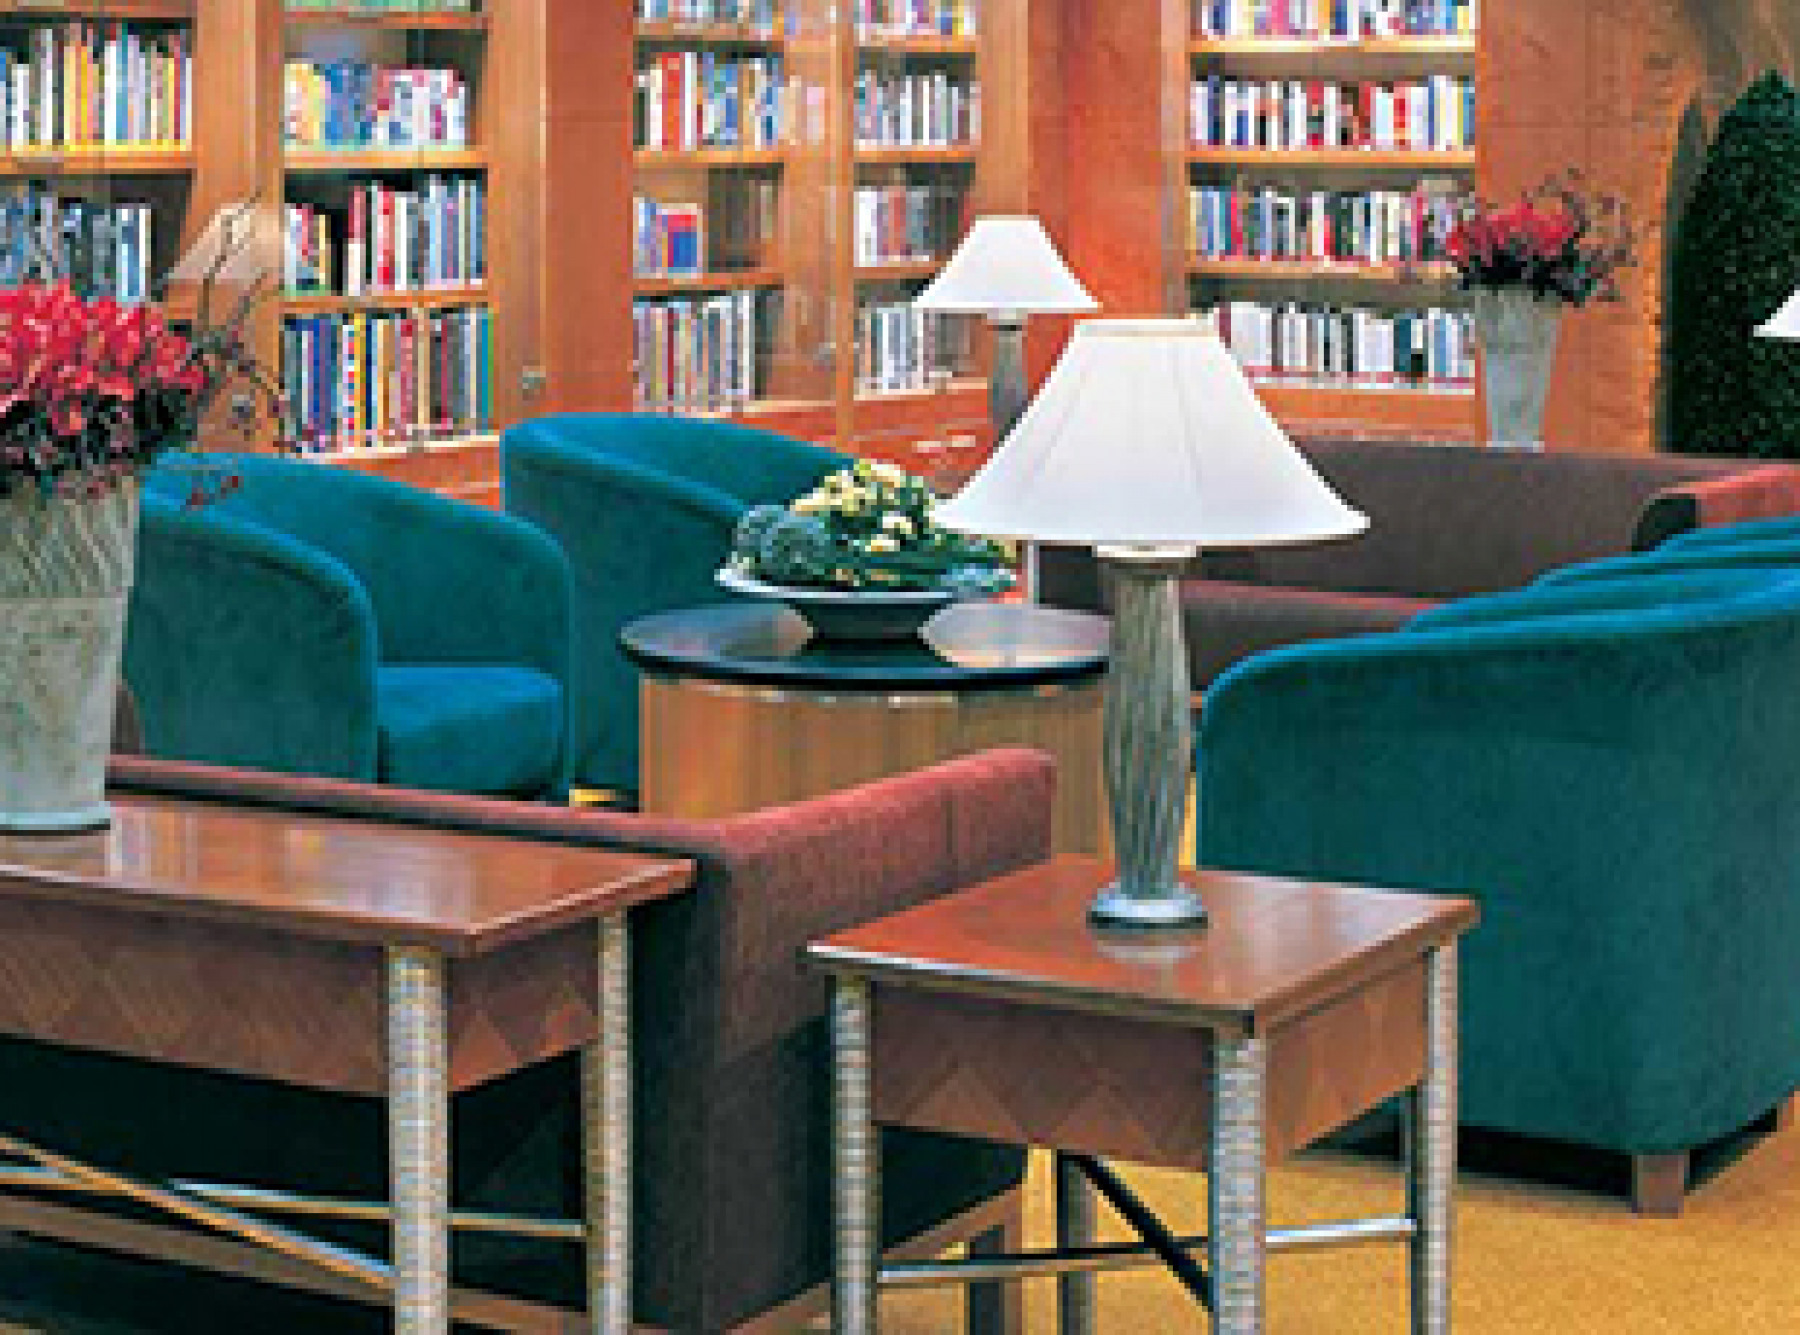 Norwegian Cruise Line Norwegian Dawn Interior Library.jpg